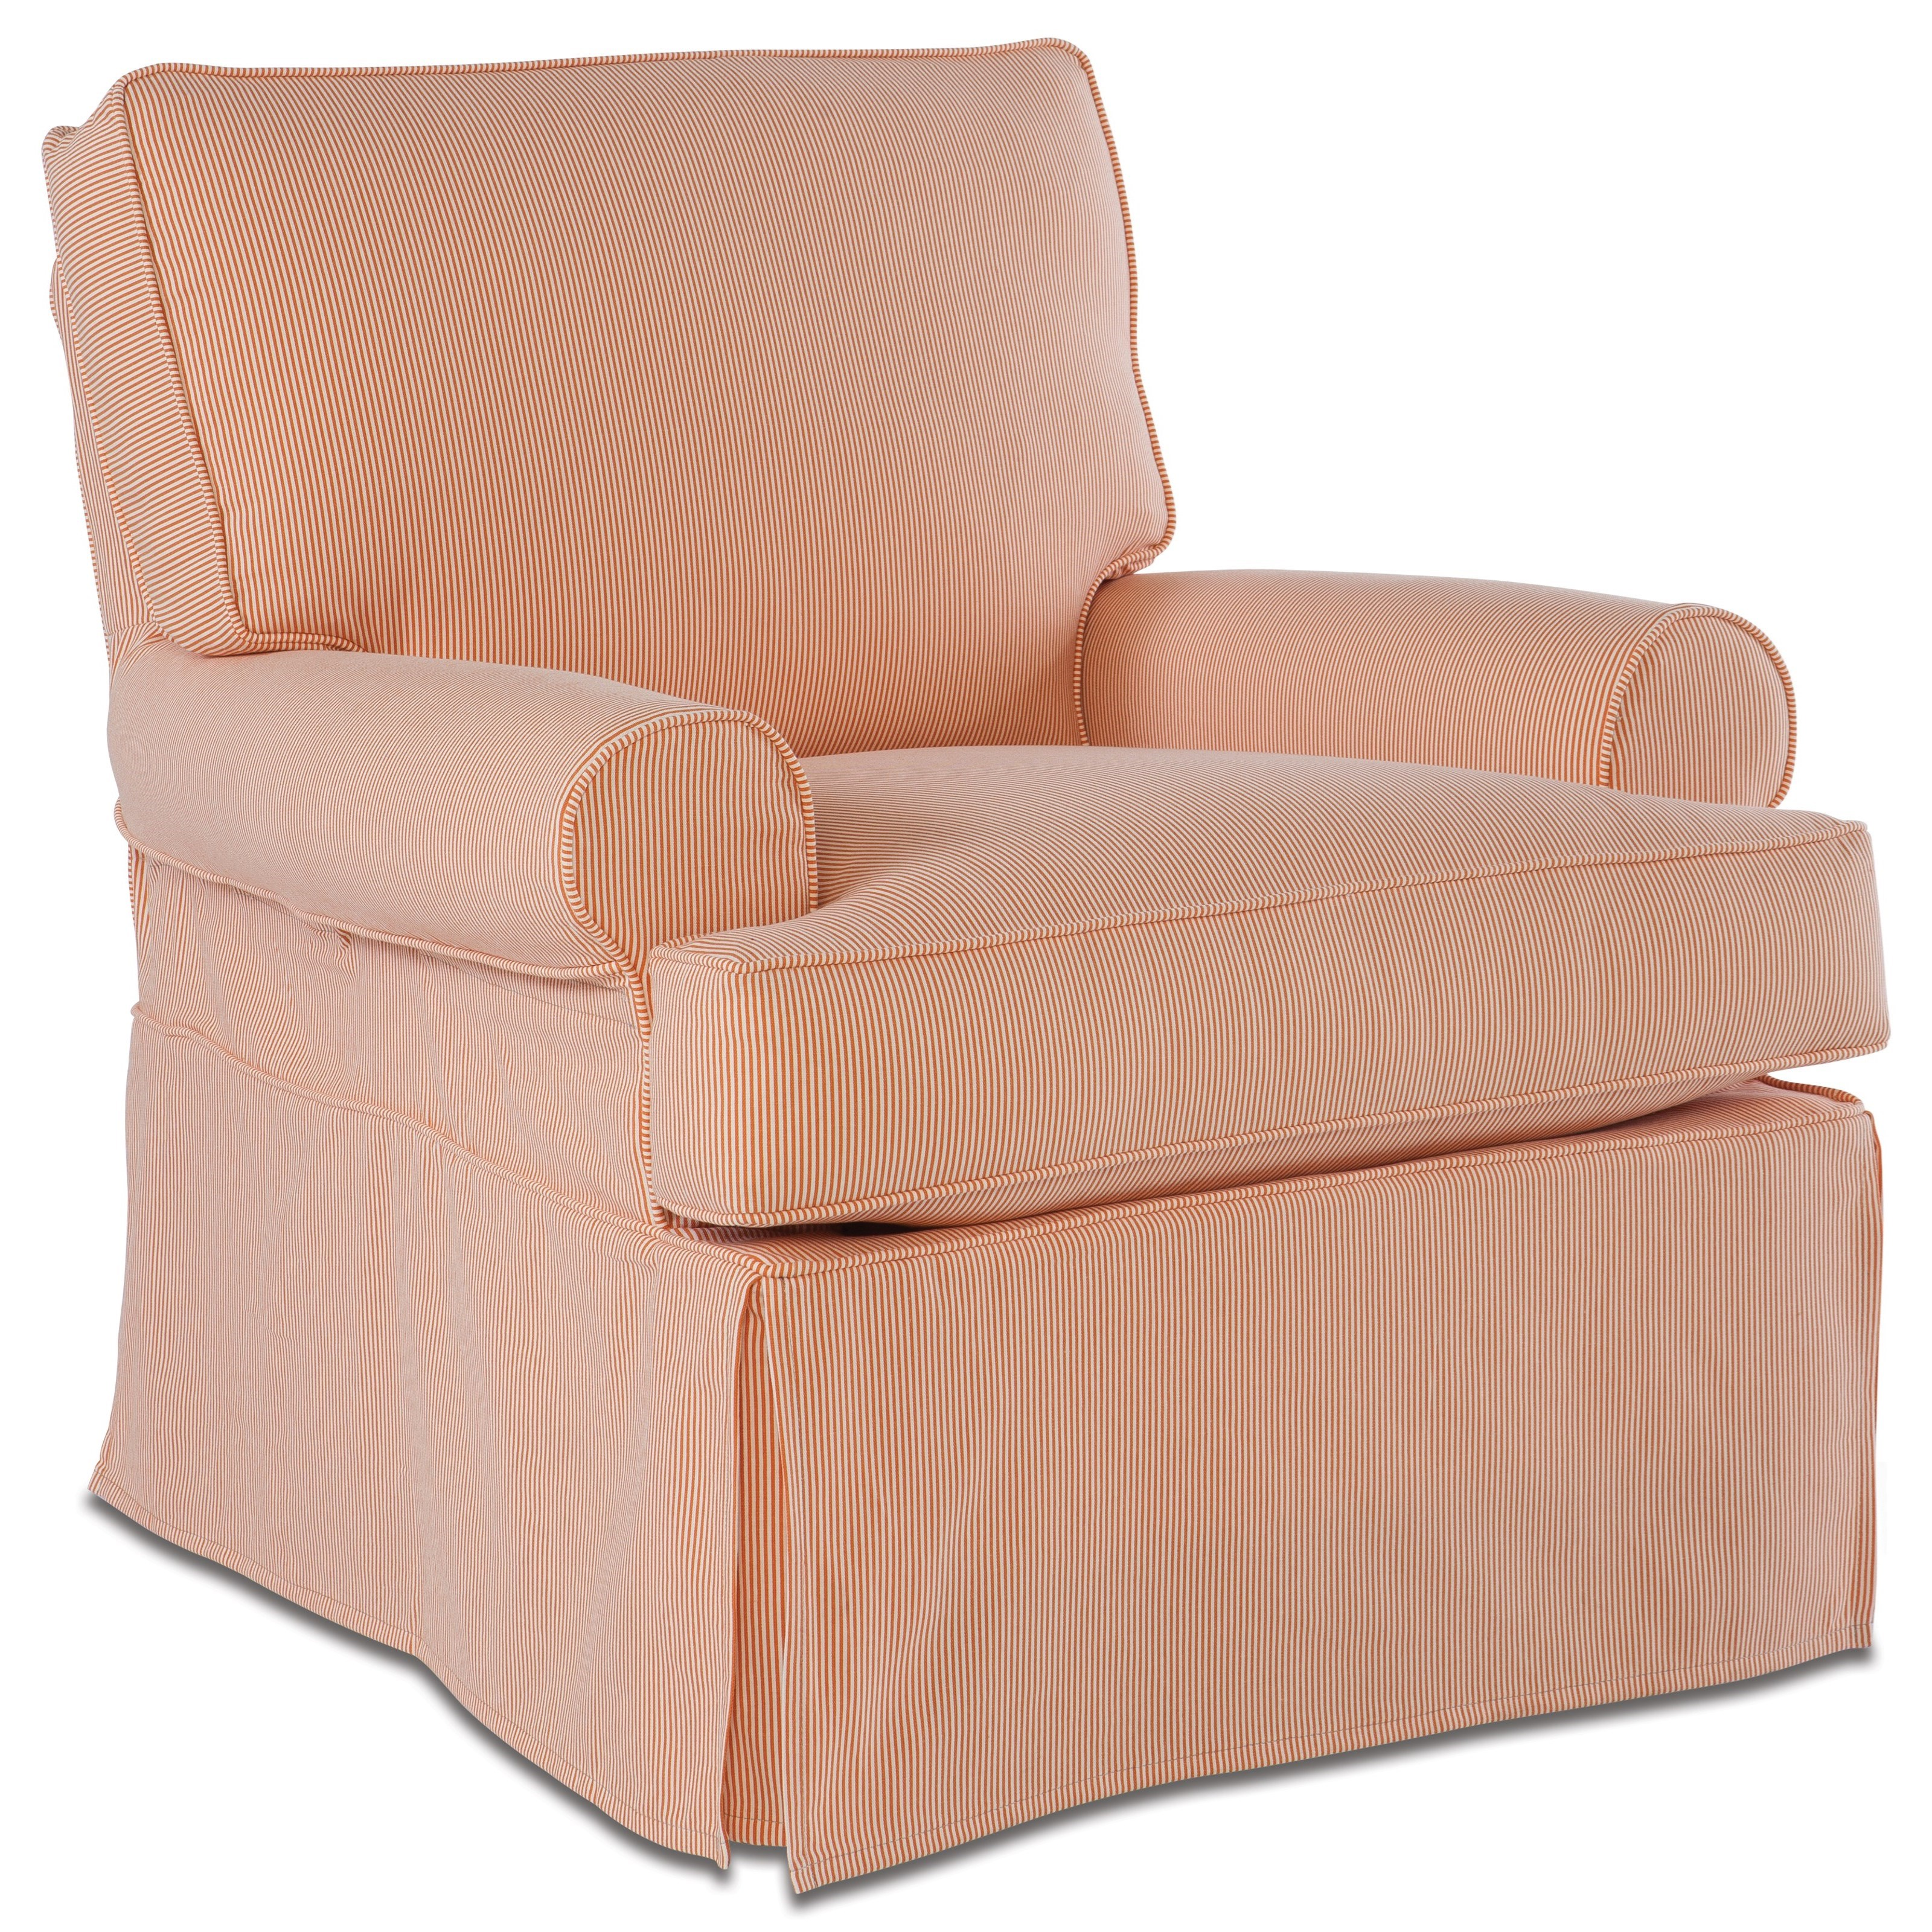 Chairs and Accents Sophie Large Swivel Glider with Slipcover by Rowe at Baer's Furniture